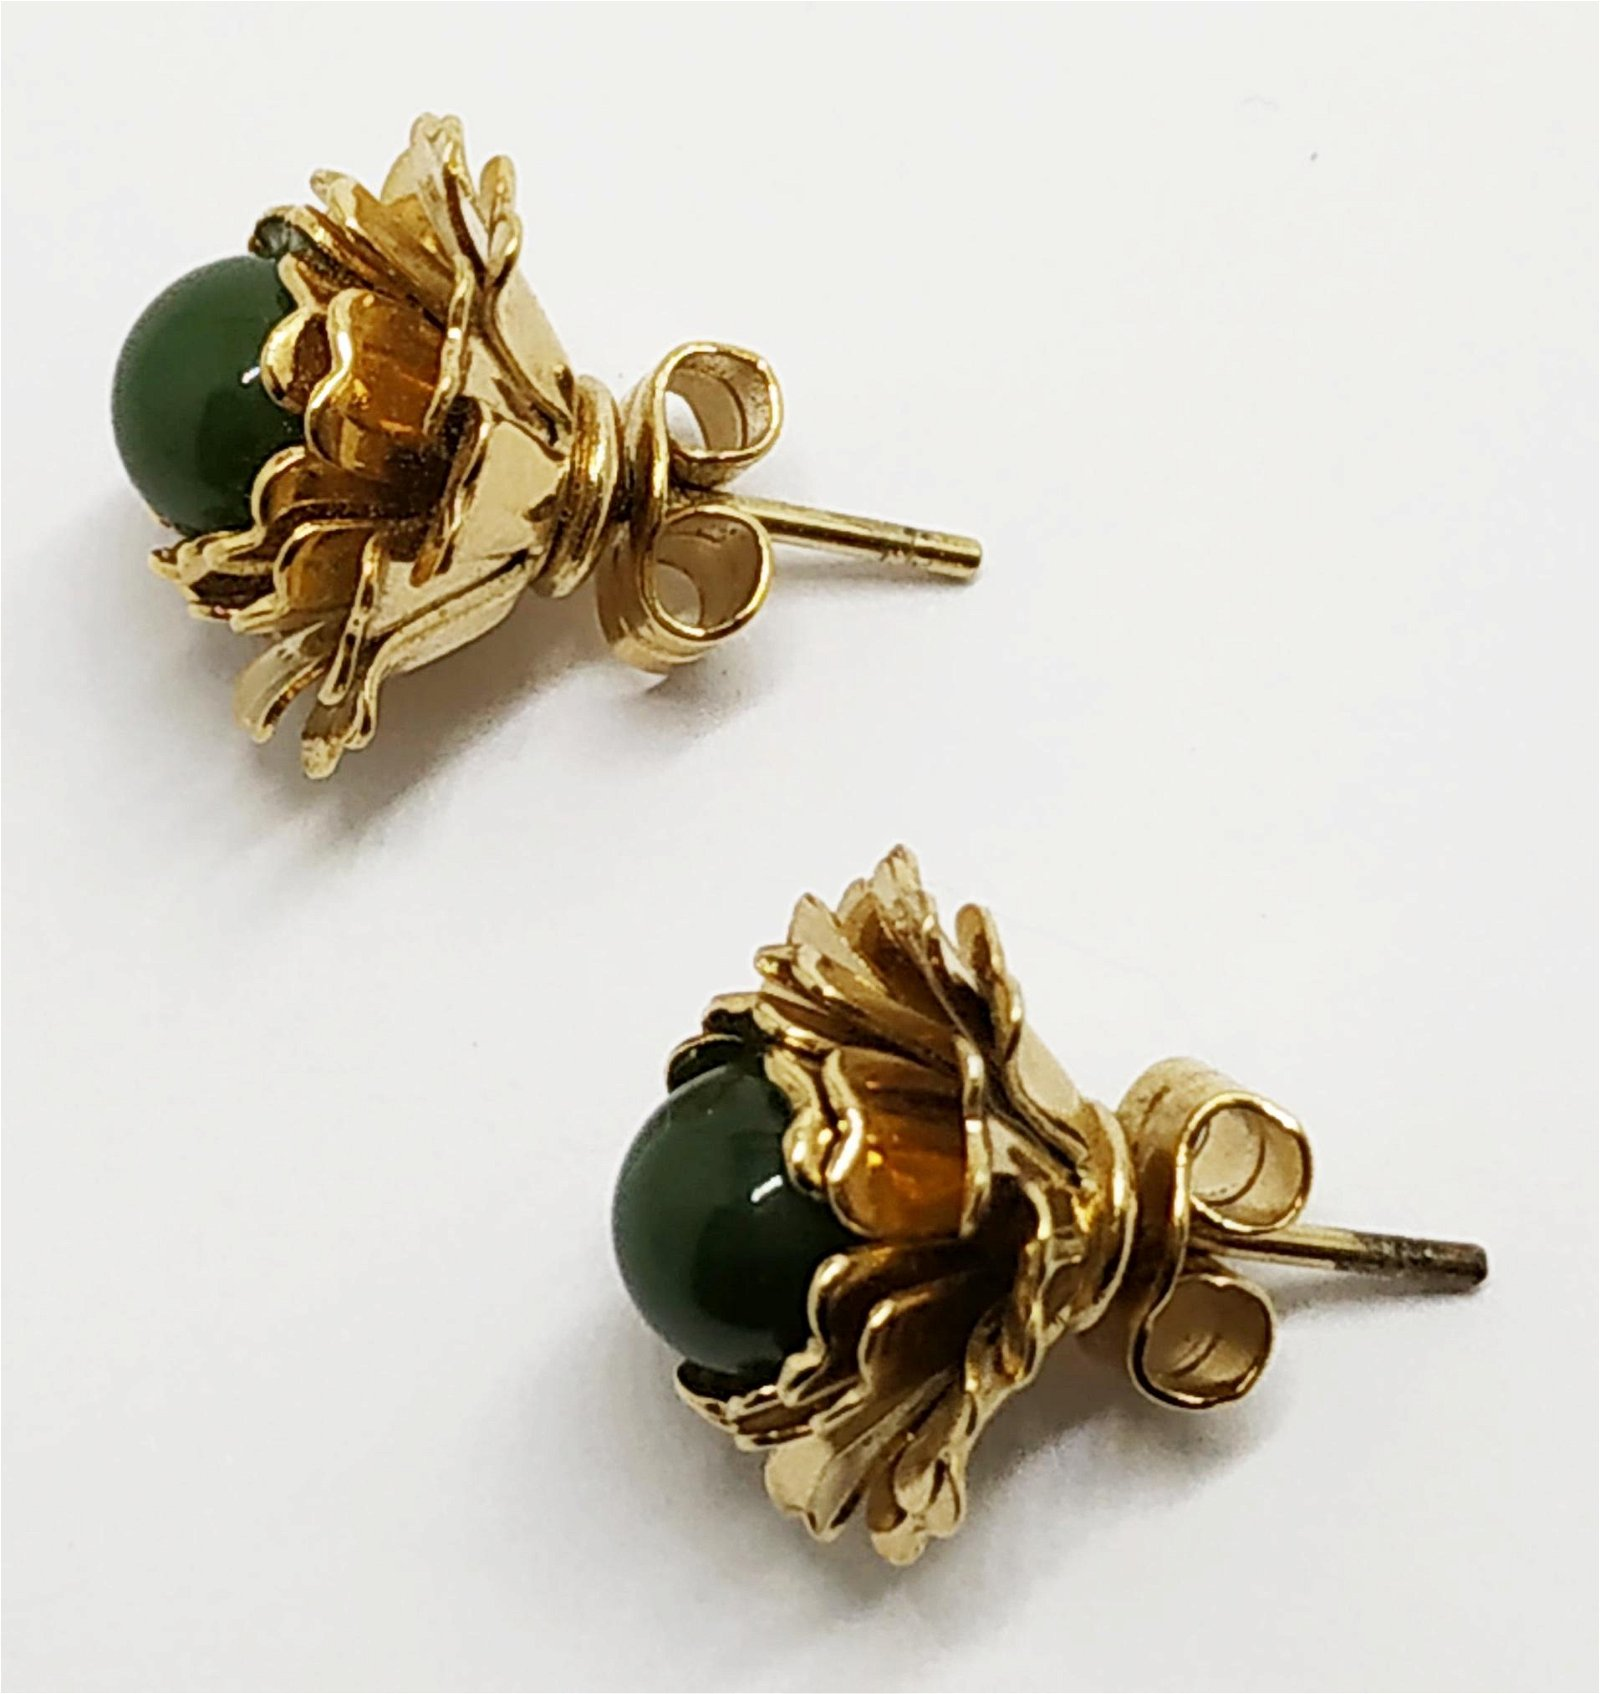 10k gold and jade floral earrings